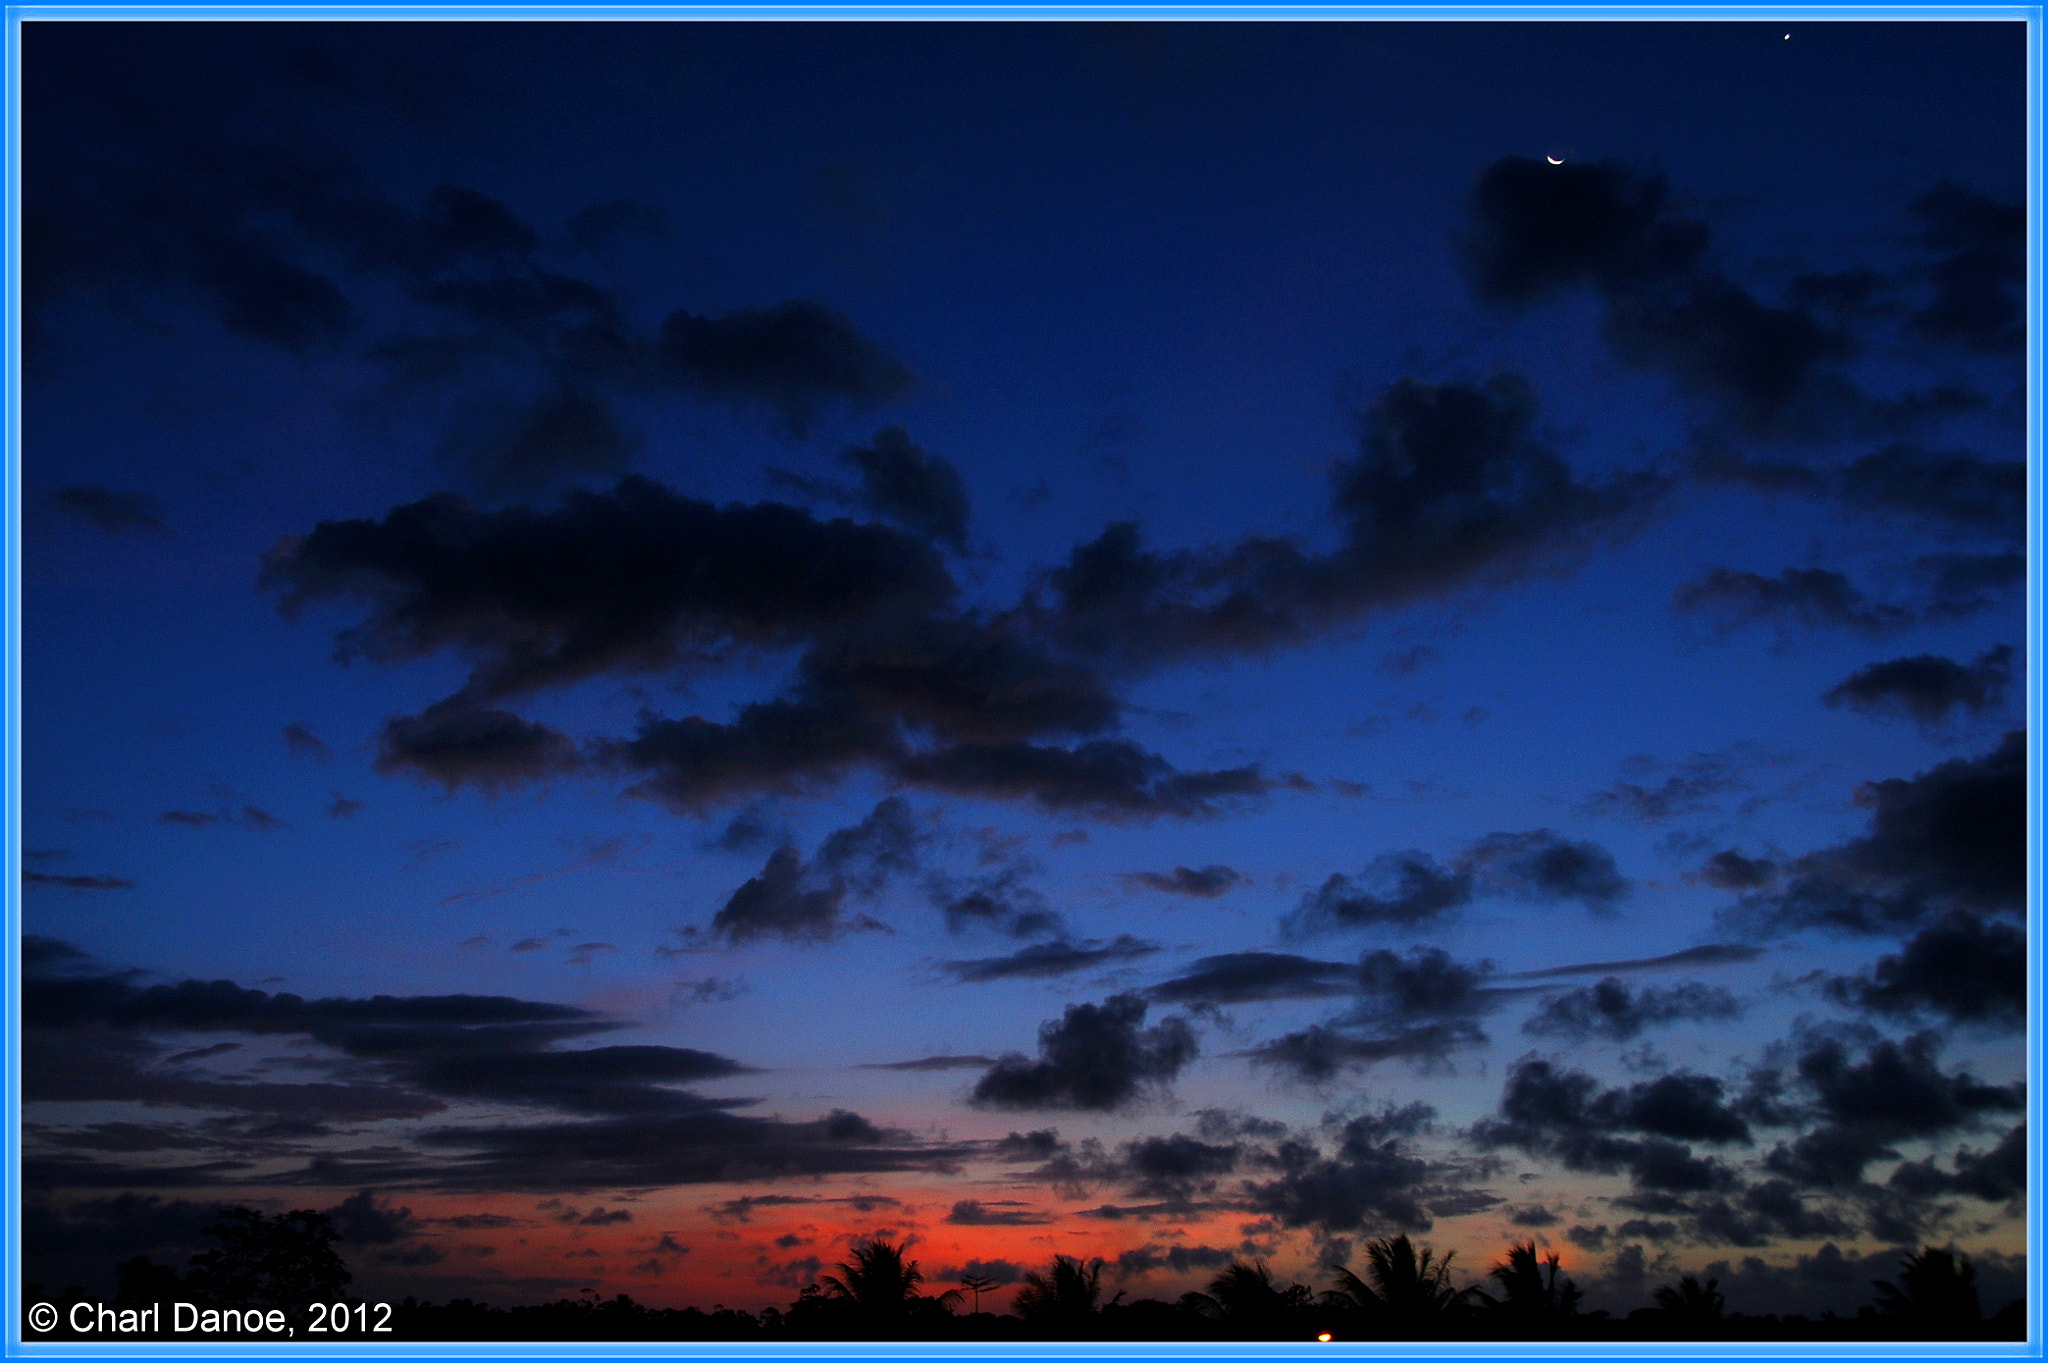 Photograph @ Dawn with moon and Jupiter by Charl Danoe on 500px